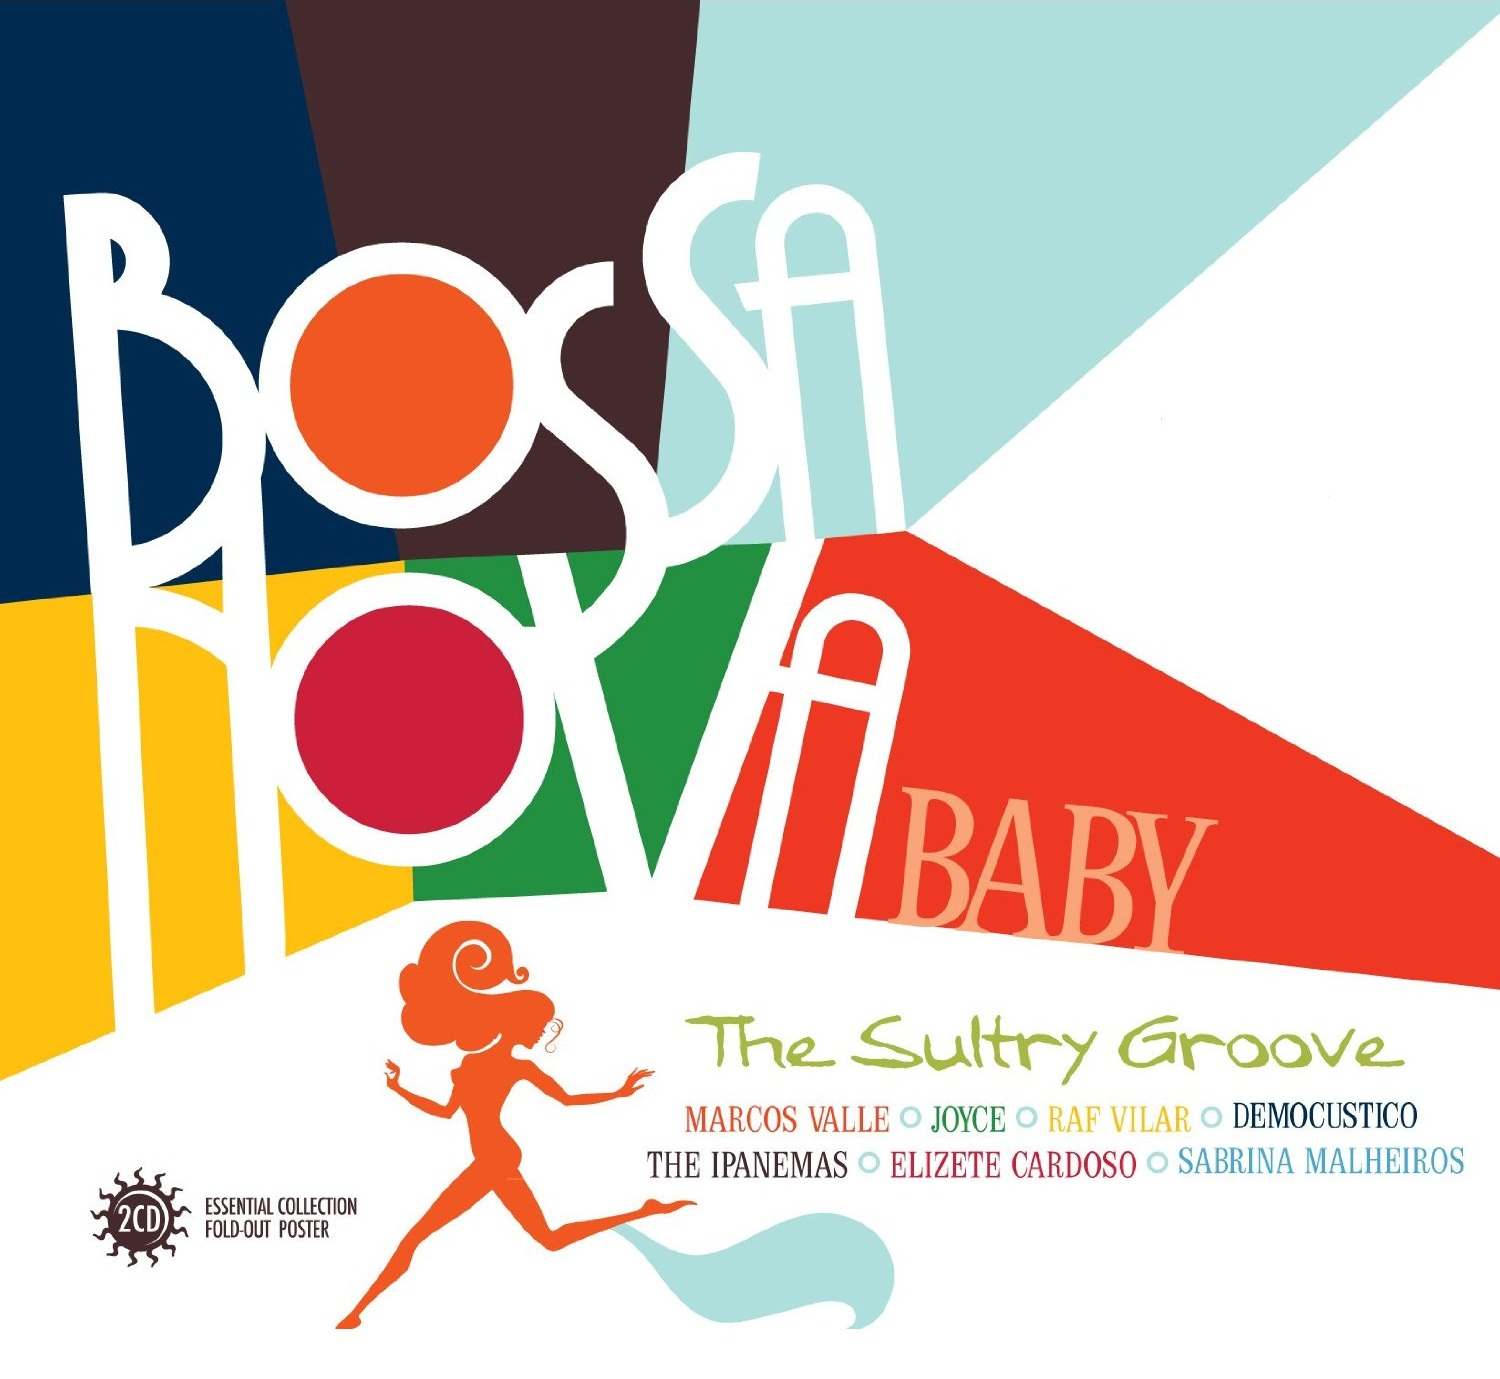 Bossa nova baby : The Sultry Groove / Anthologie |